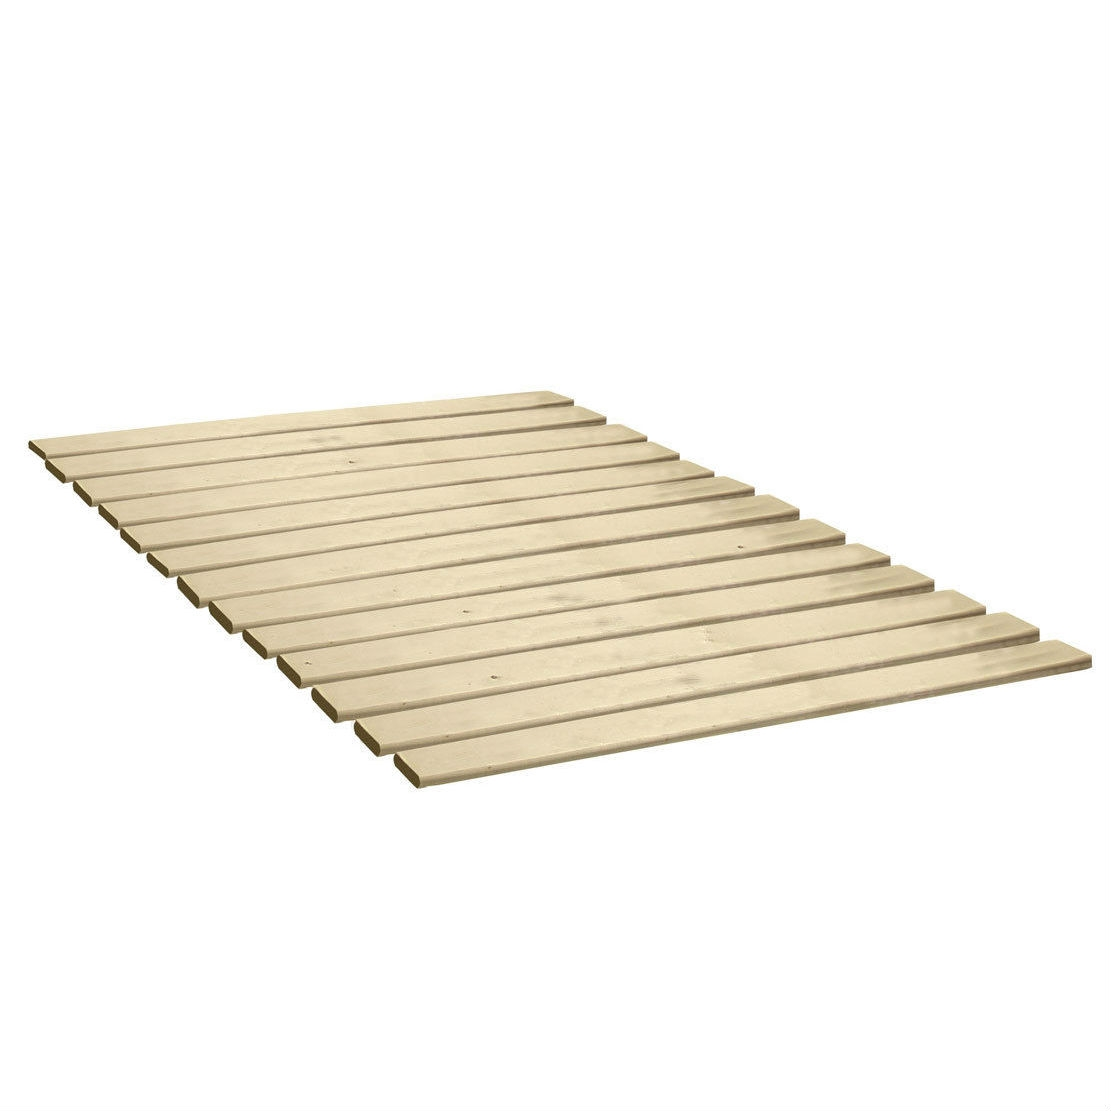 Full size Solid Wood Bed Slats   Made in USA | FastFurnishings.com